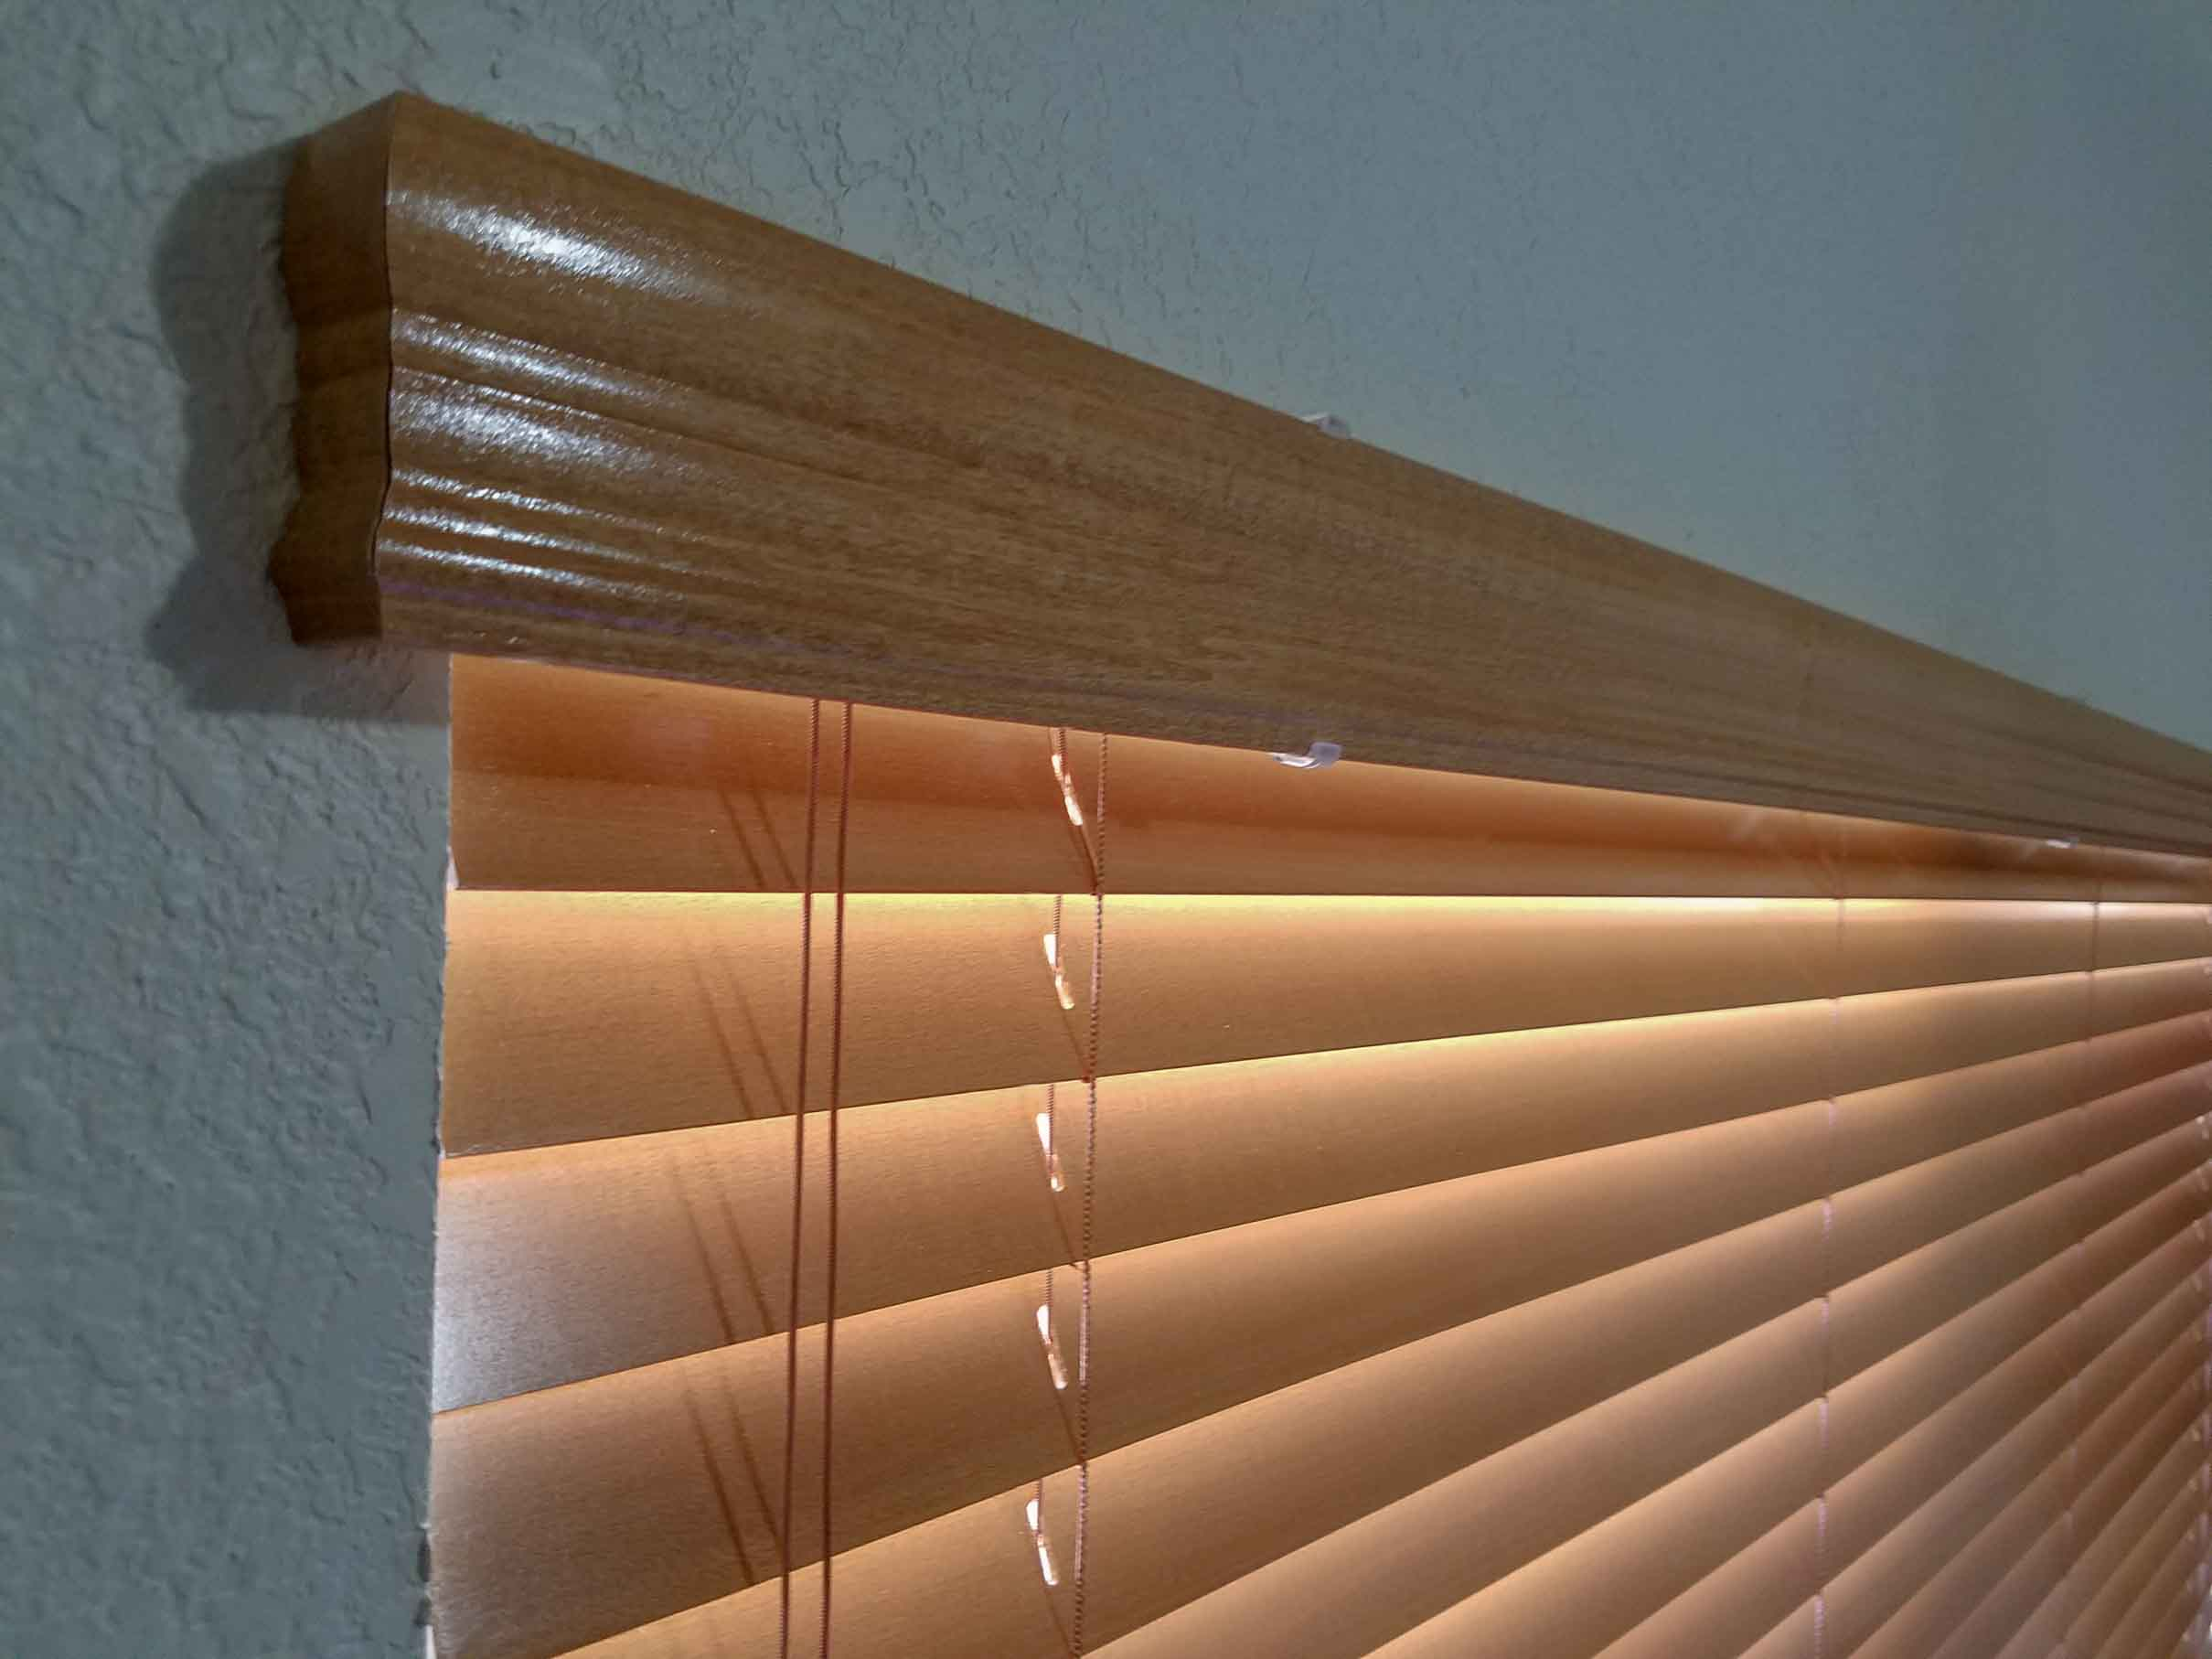 wood blinds gallery WOOD BLINDS GALLERY 20160820 130514